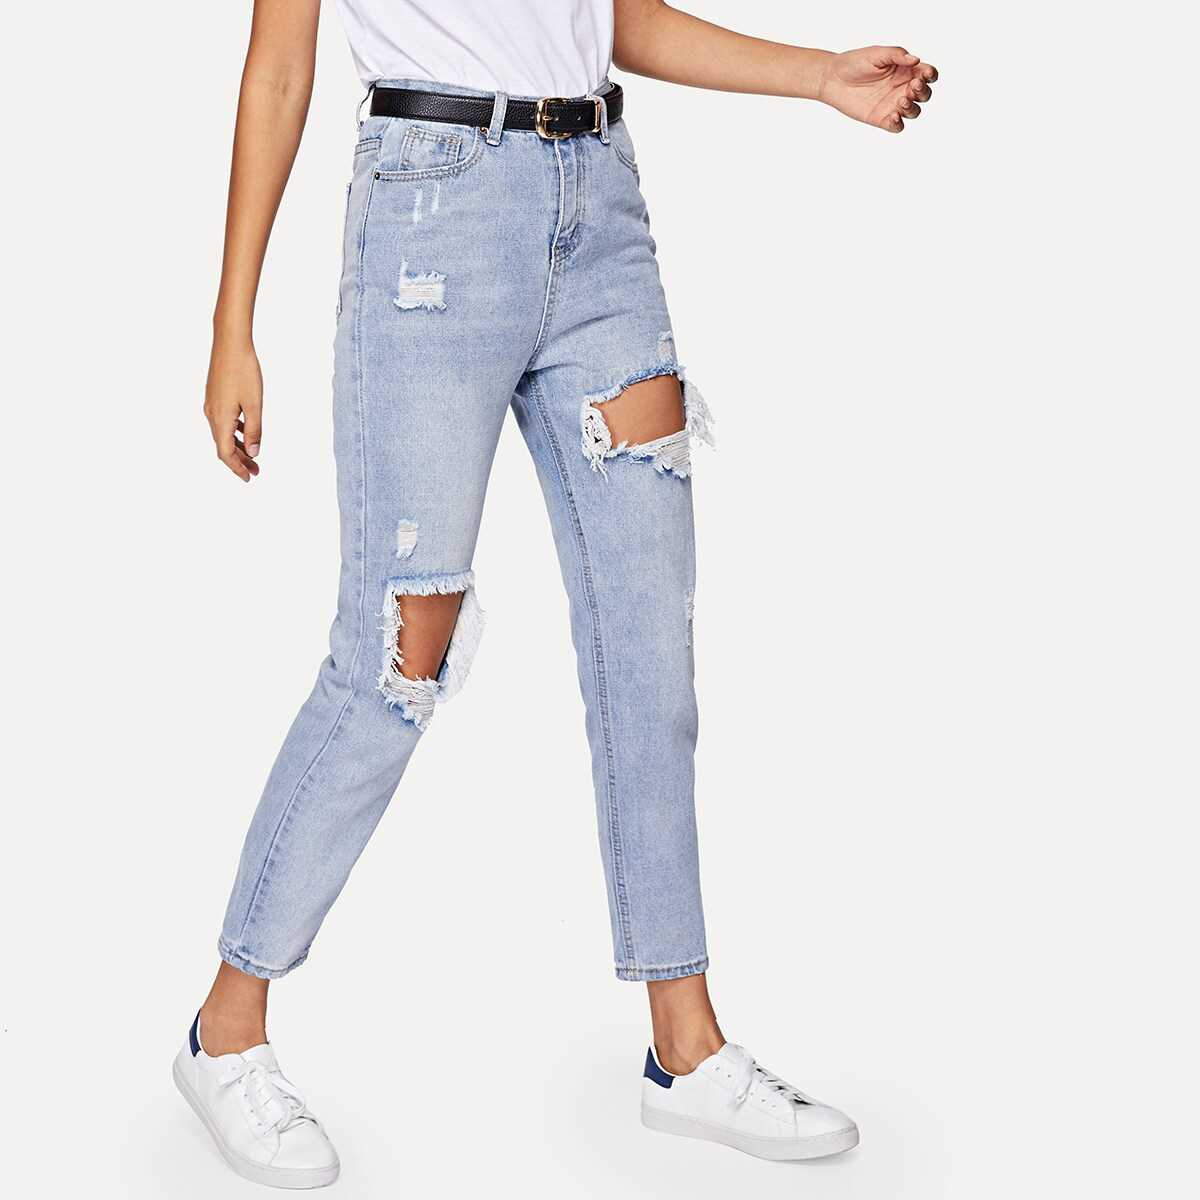 Cut-out Ripped Jeans - Shein - GOOFASH